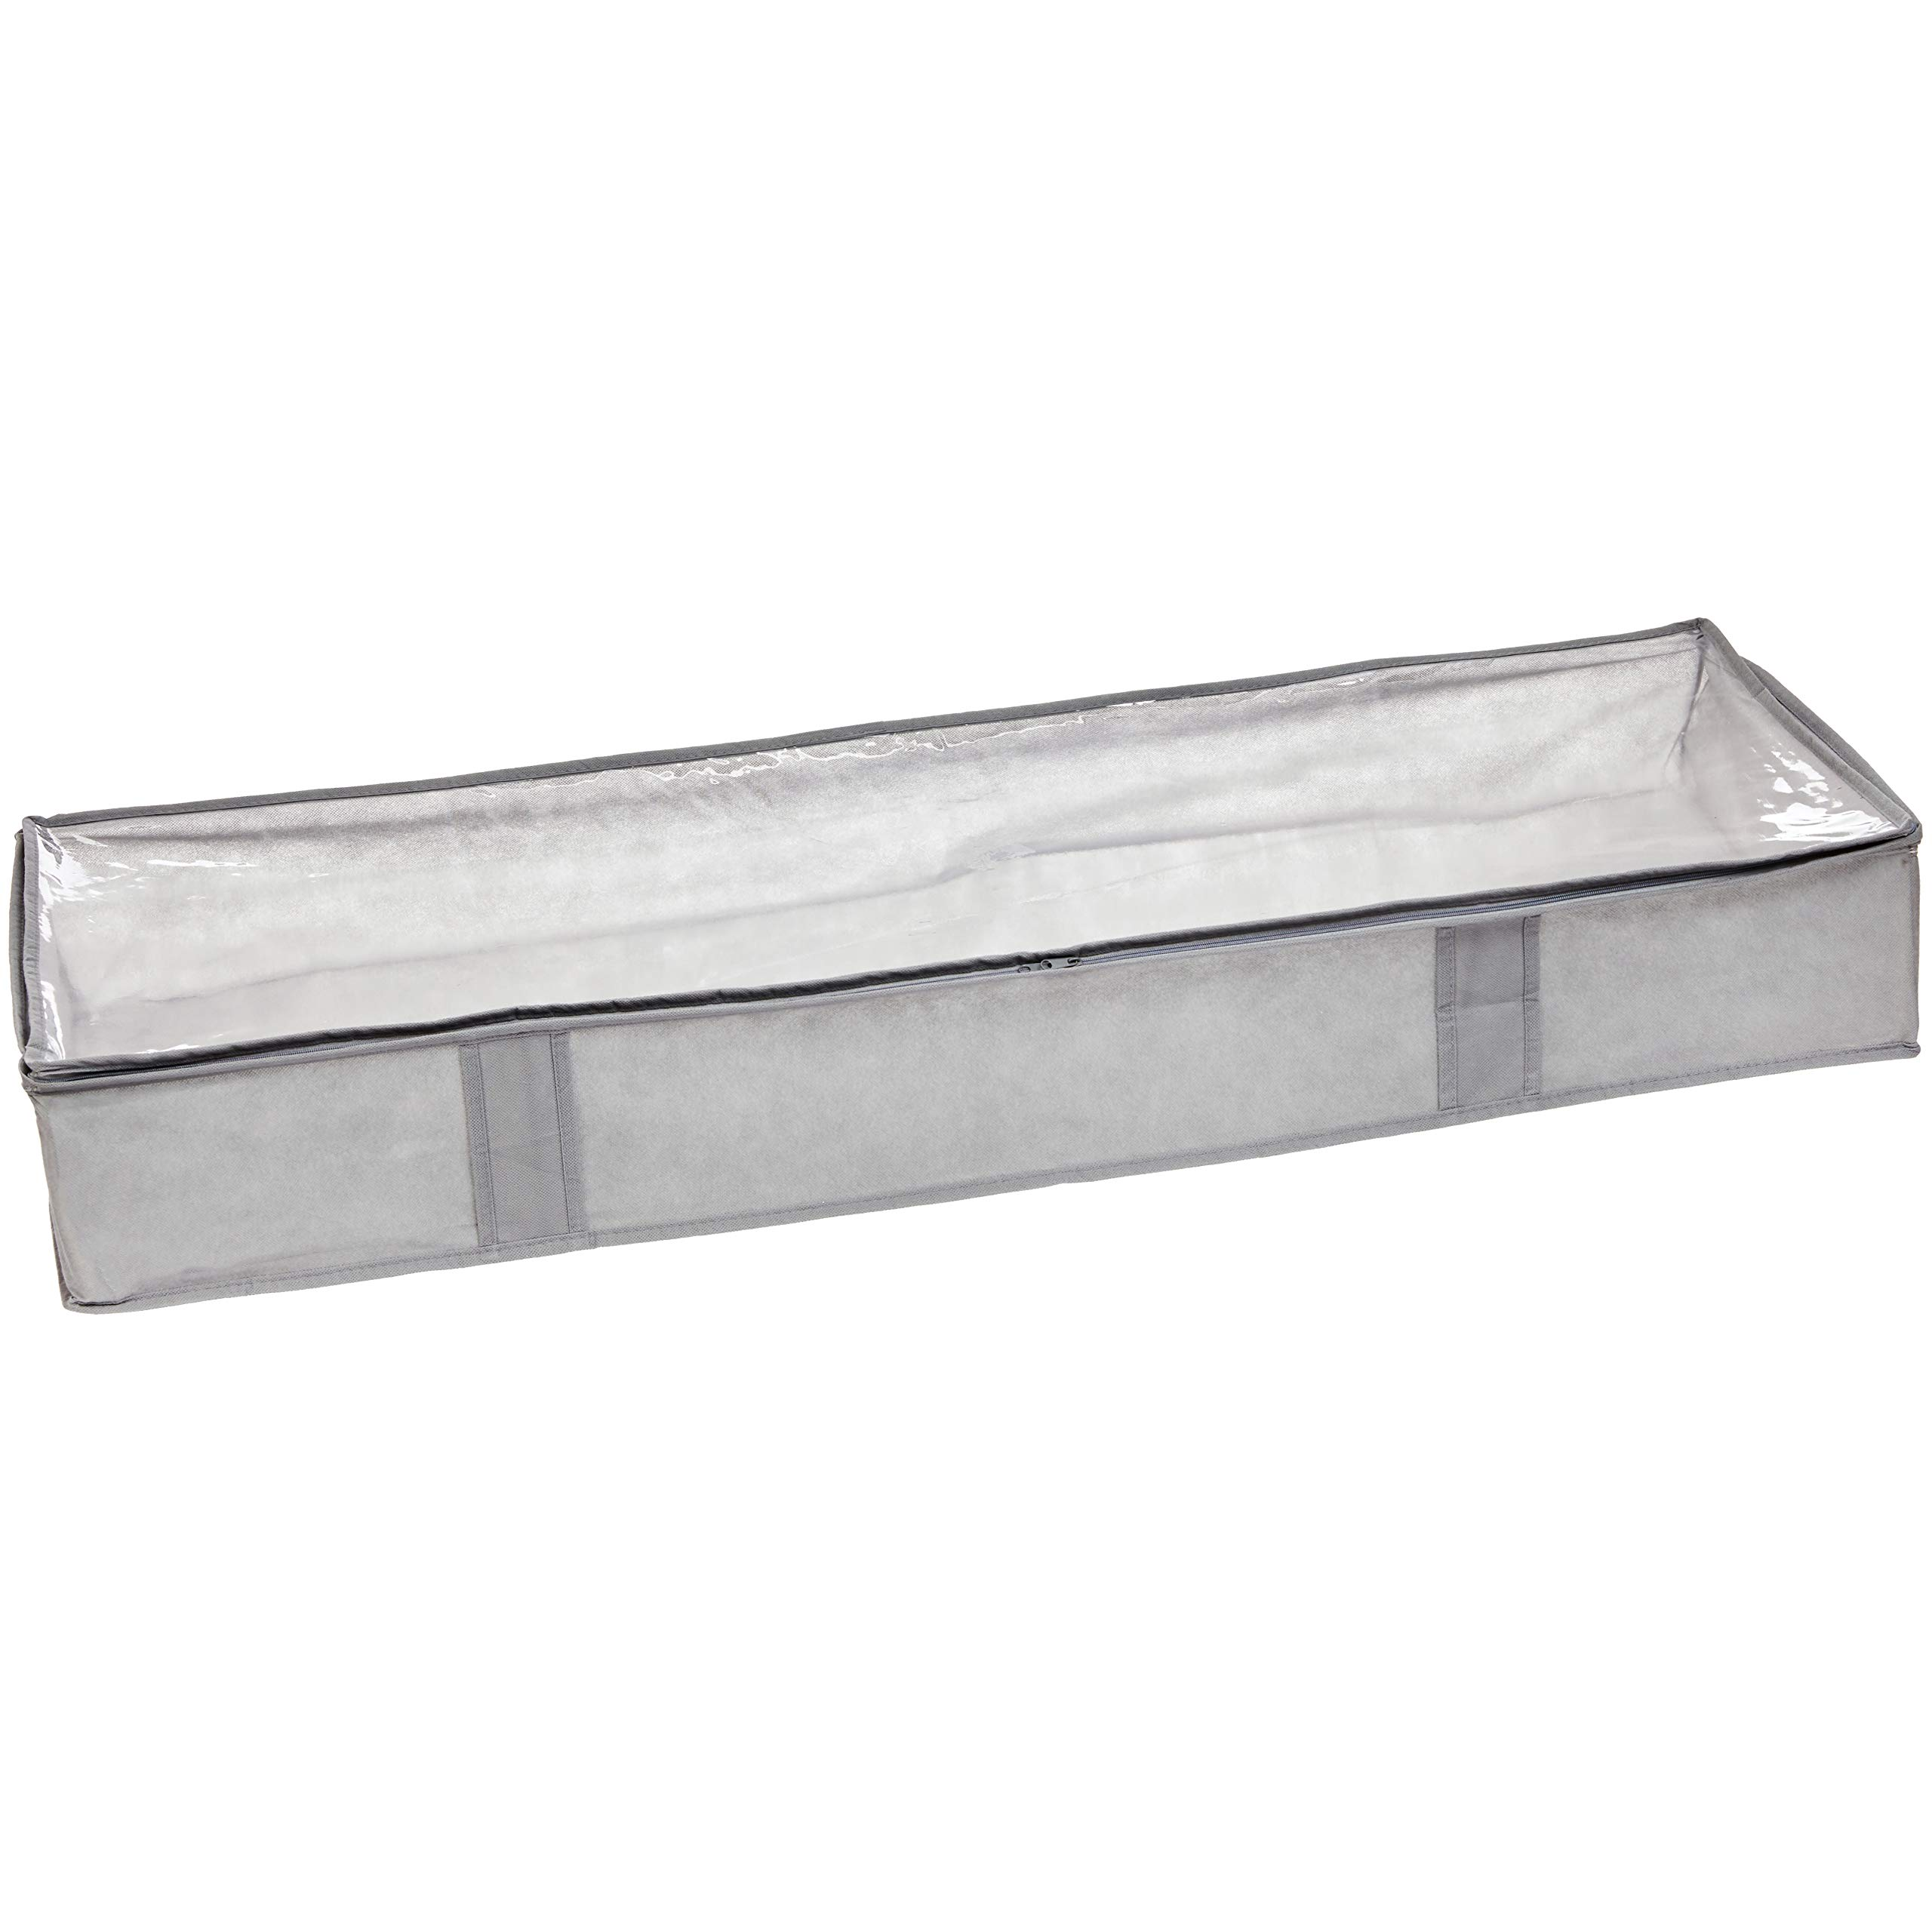 AmazonBasics Under Bed Storage Containers with Zipper, 2-Pack by AmazonBasics